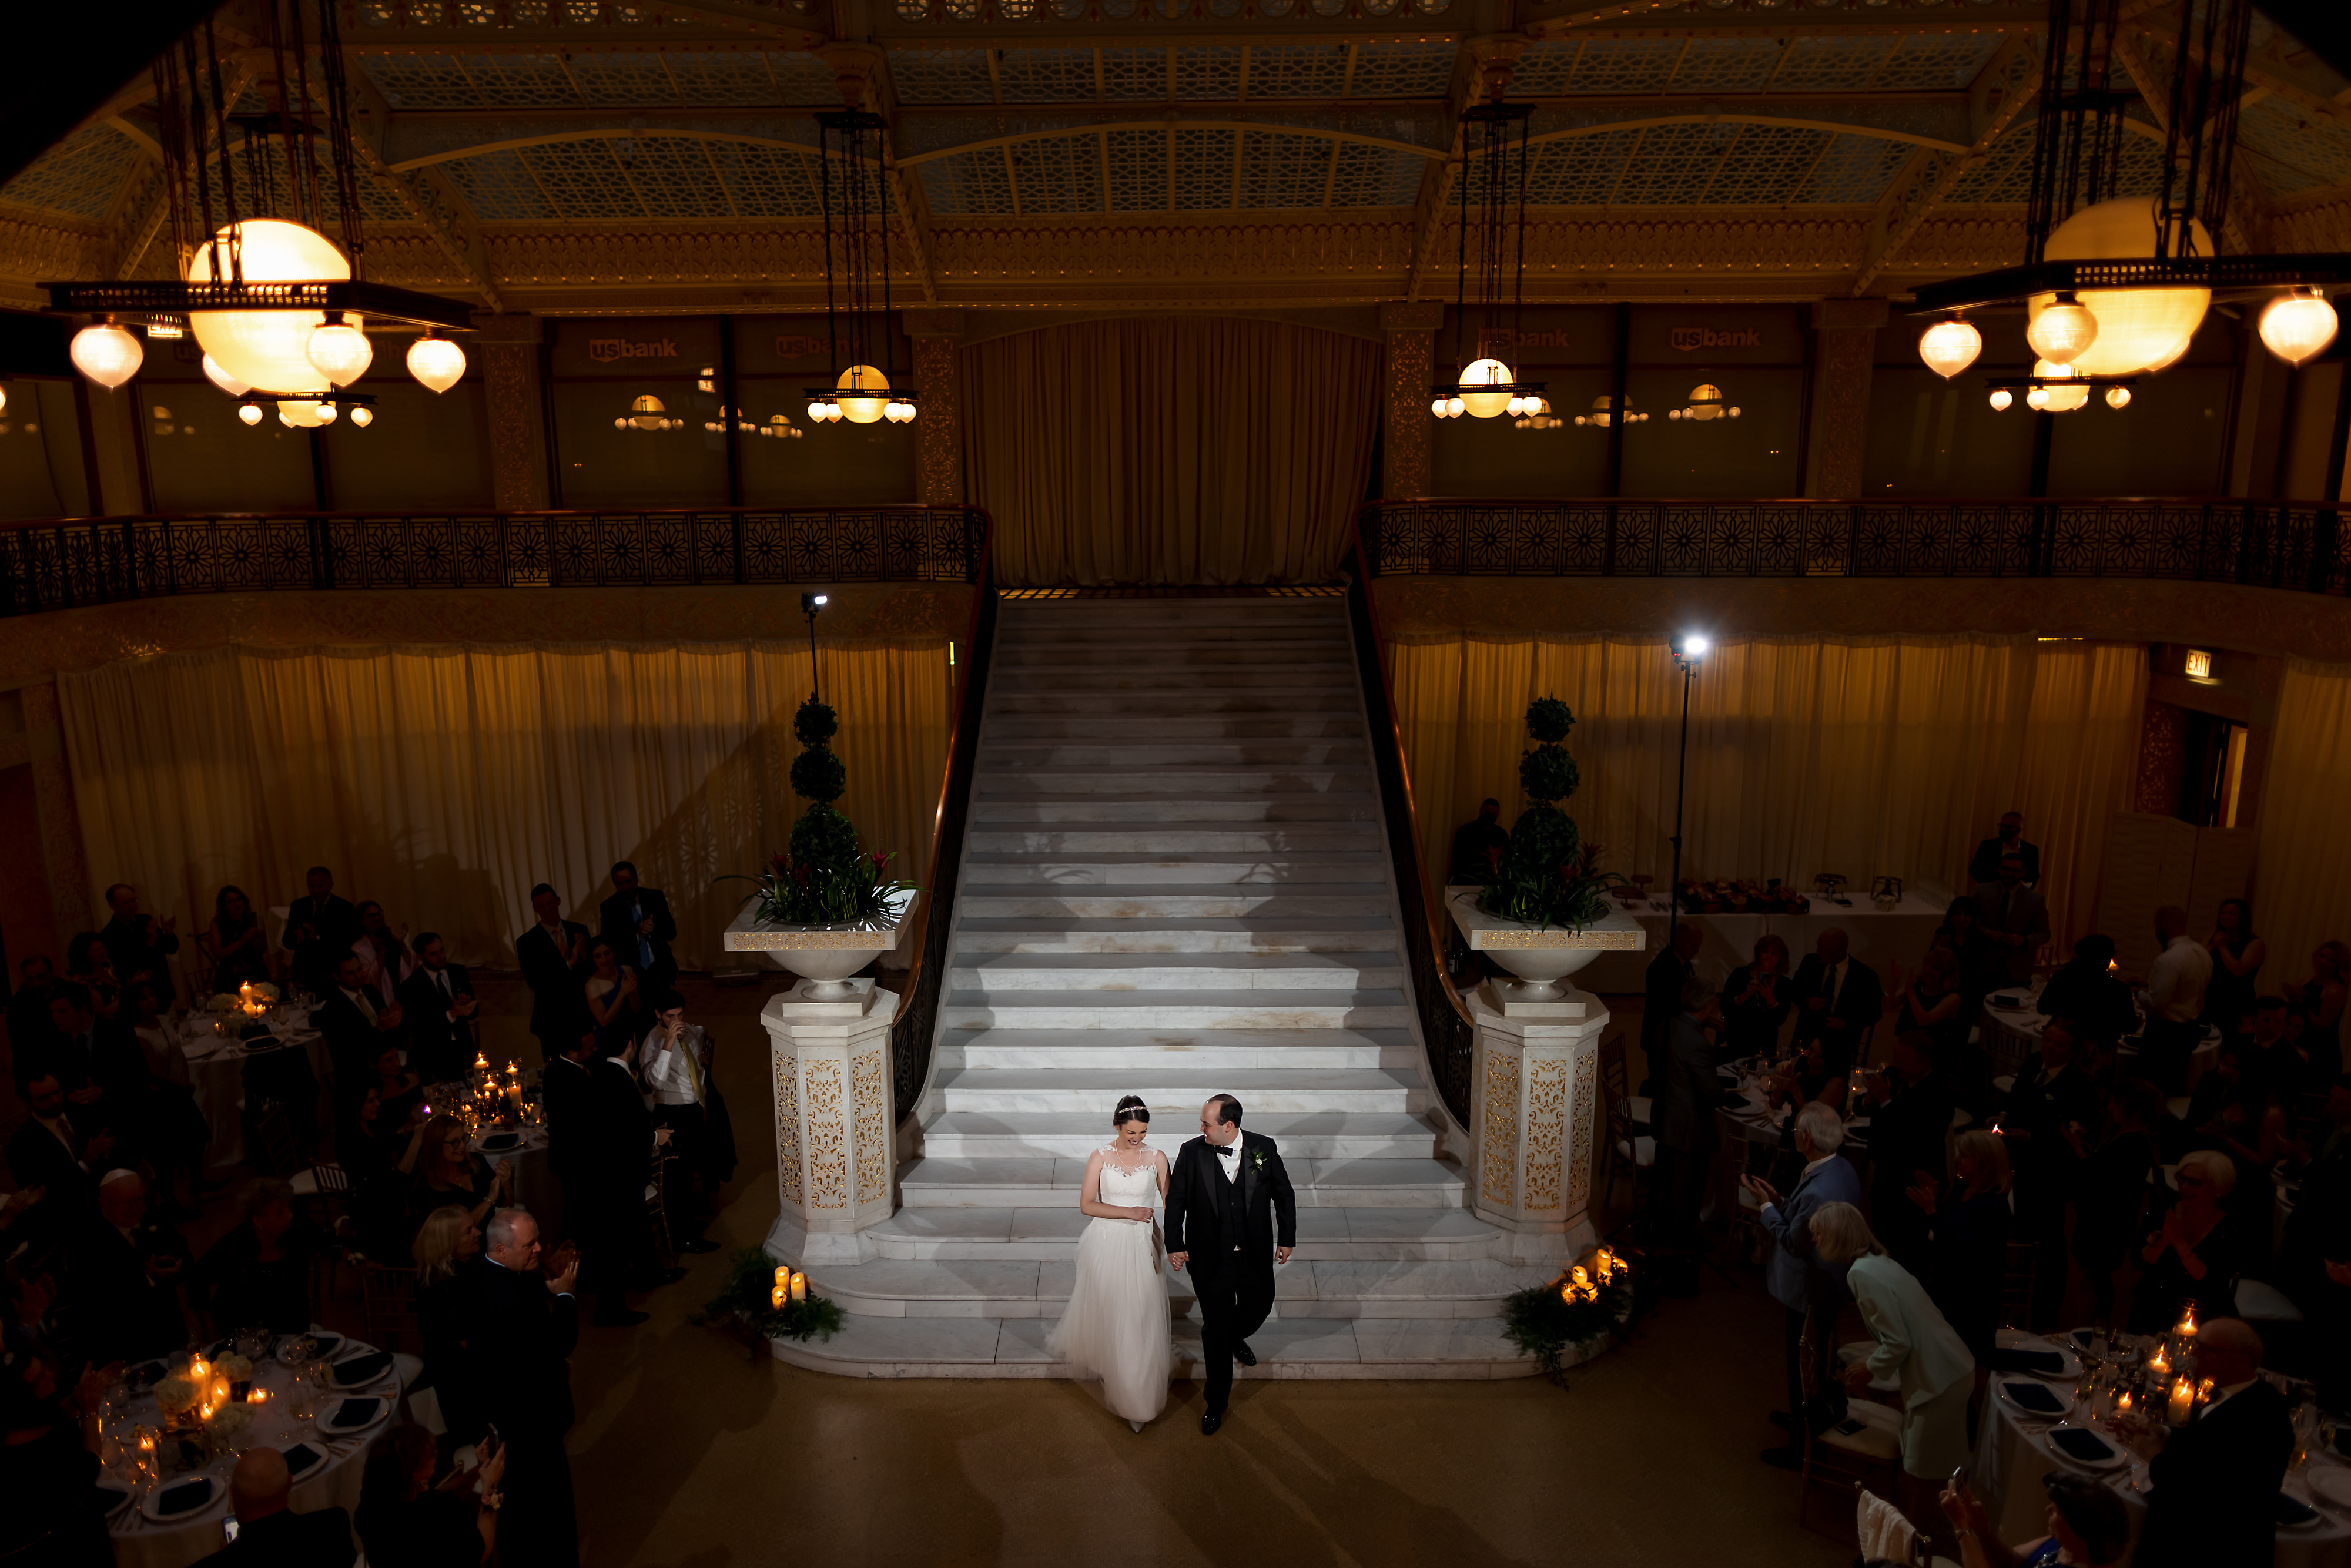 Bride and Groom walk down staircase into wedding reception at the Rookery Building in Chicago